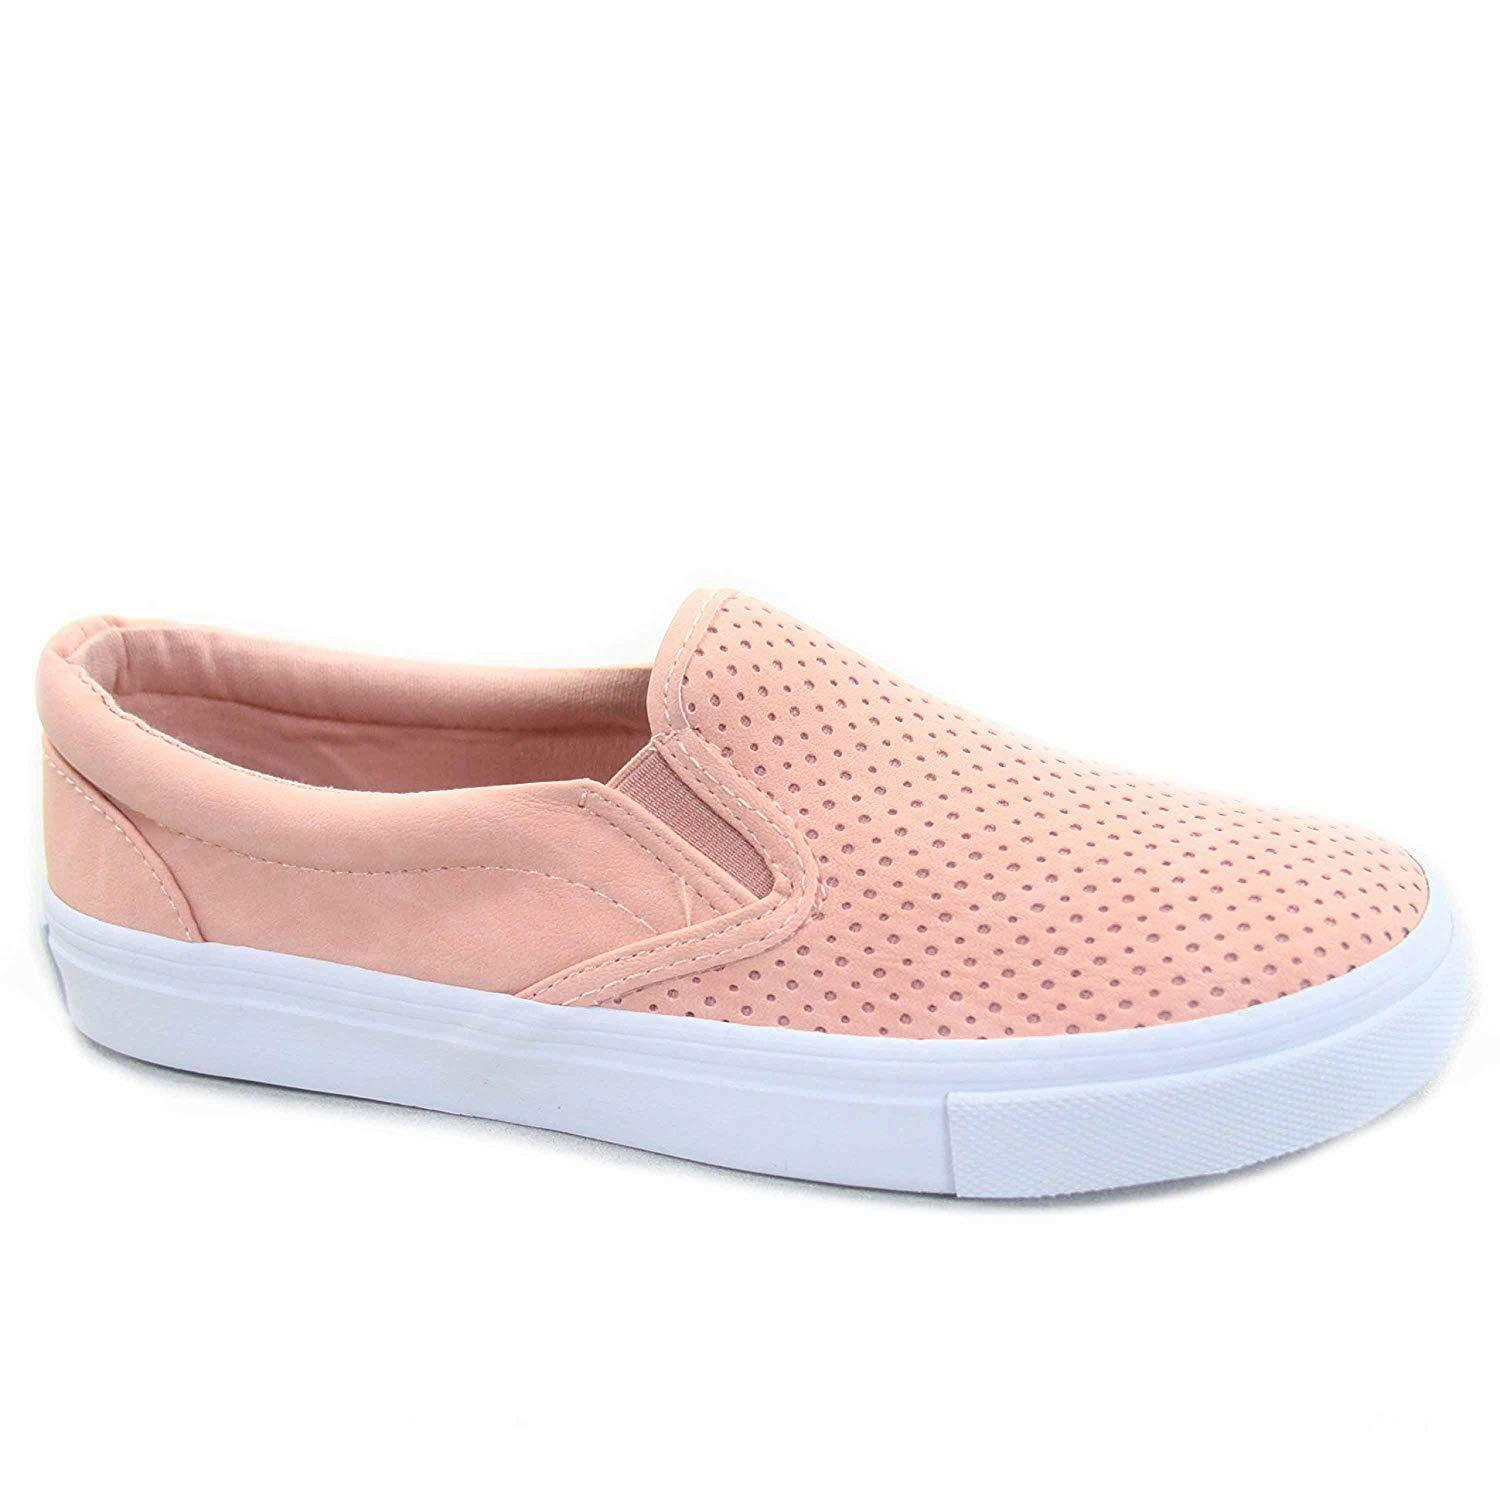 Soda Tracer-S Women's Cute Perforated Slip On Flat Round Toe Sneaker Shoes image 7